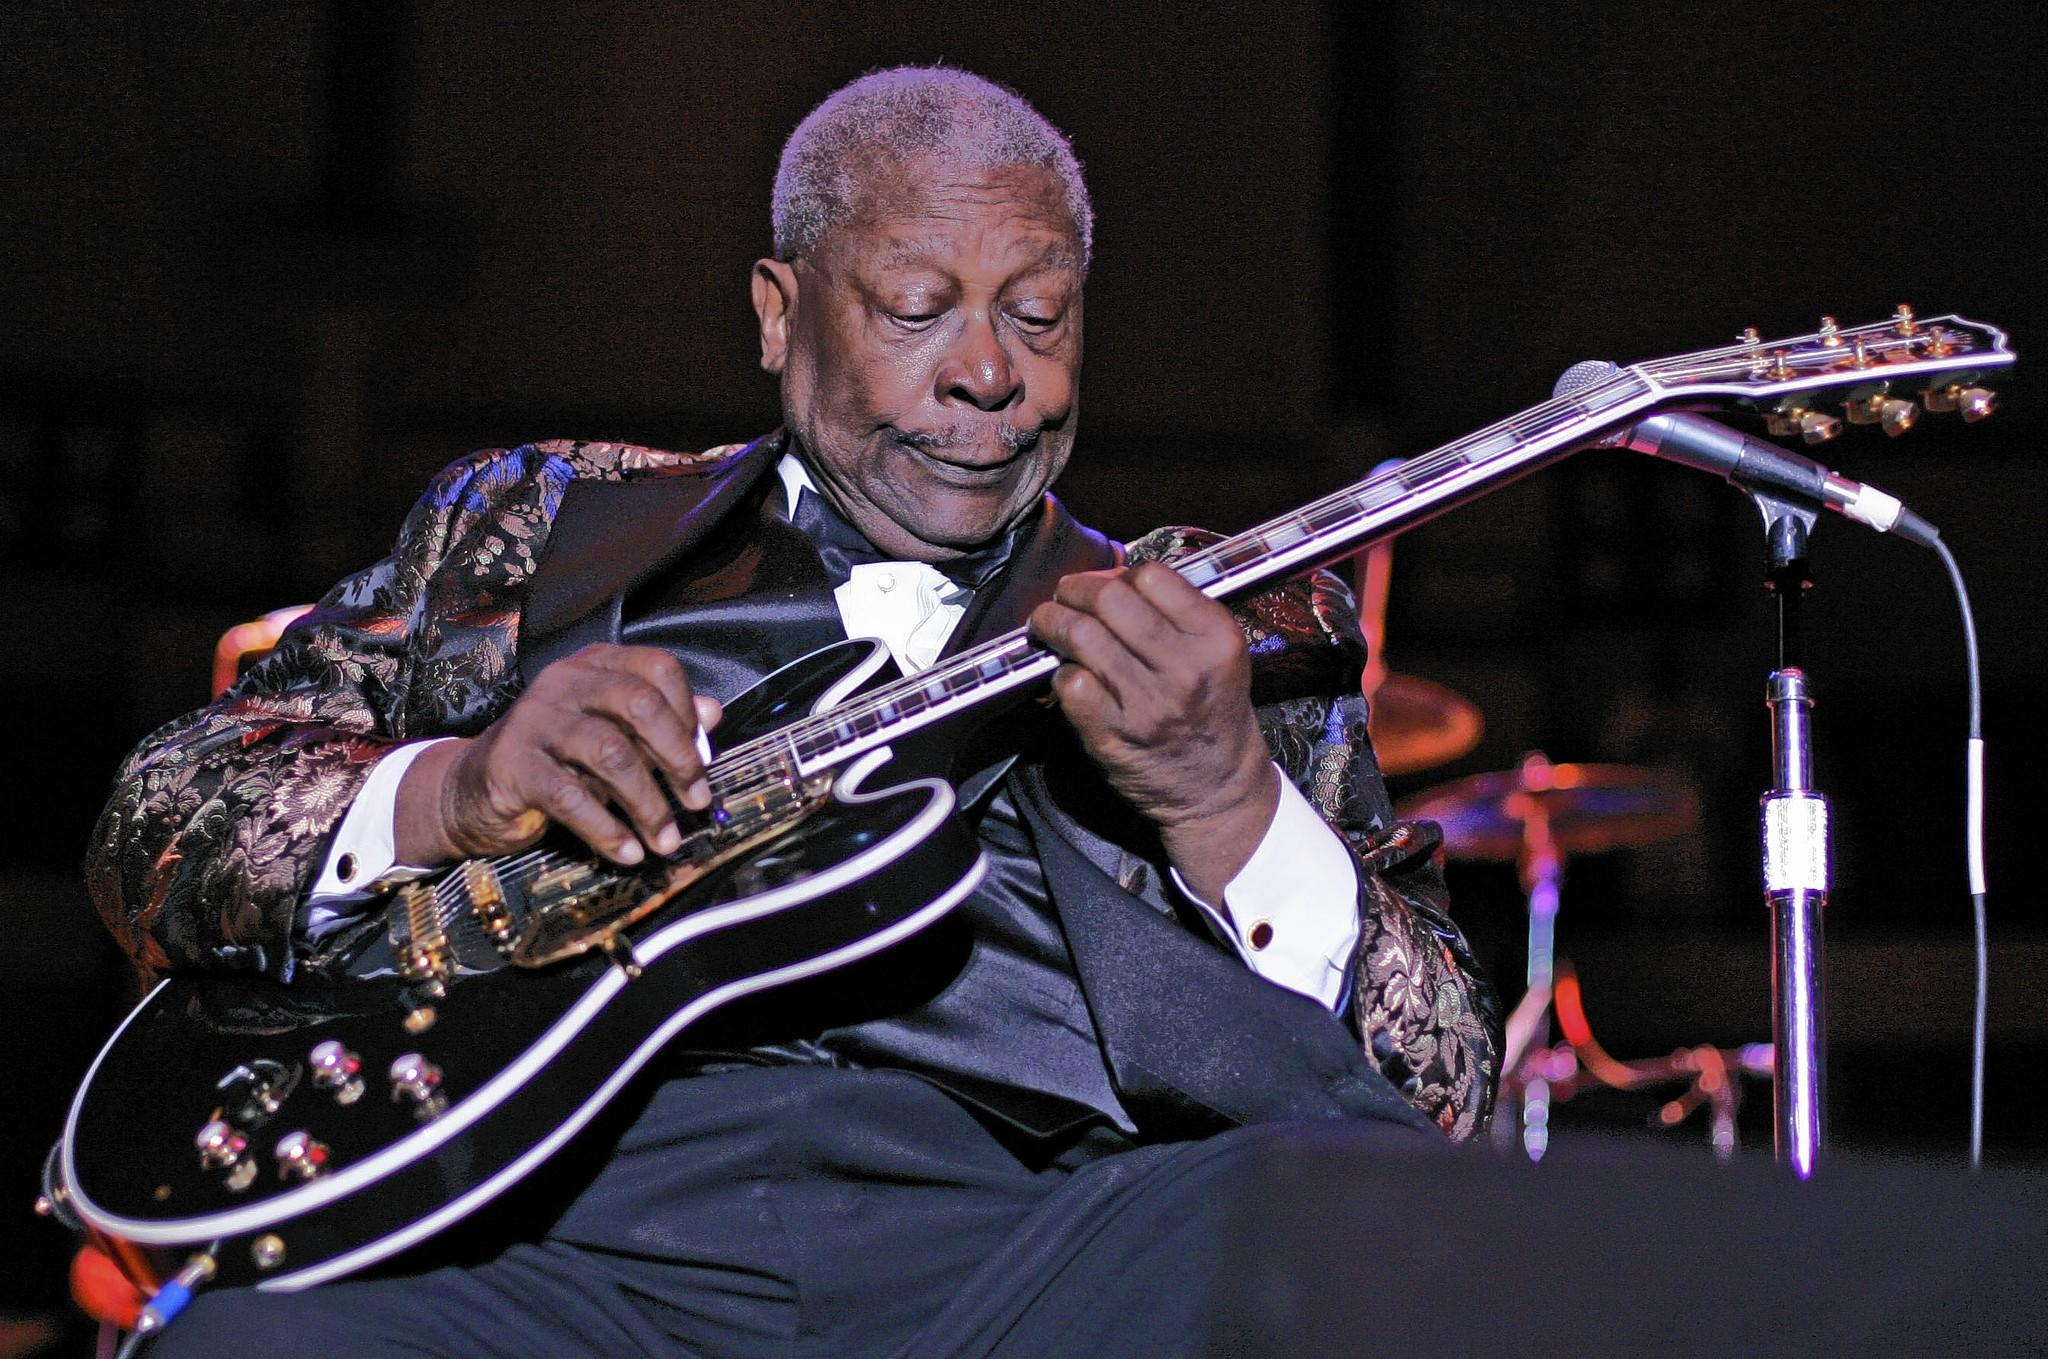 B. B. King performs at Hampton Coliseum during the 2006 Hampton Jazz Festival.